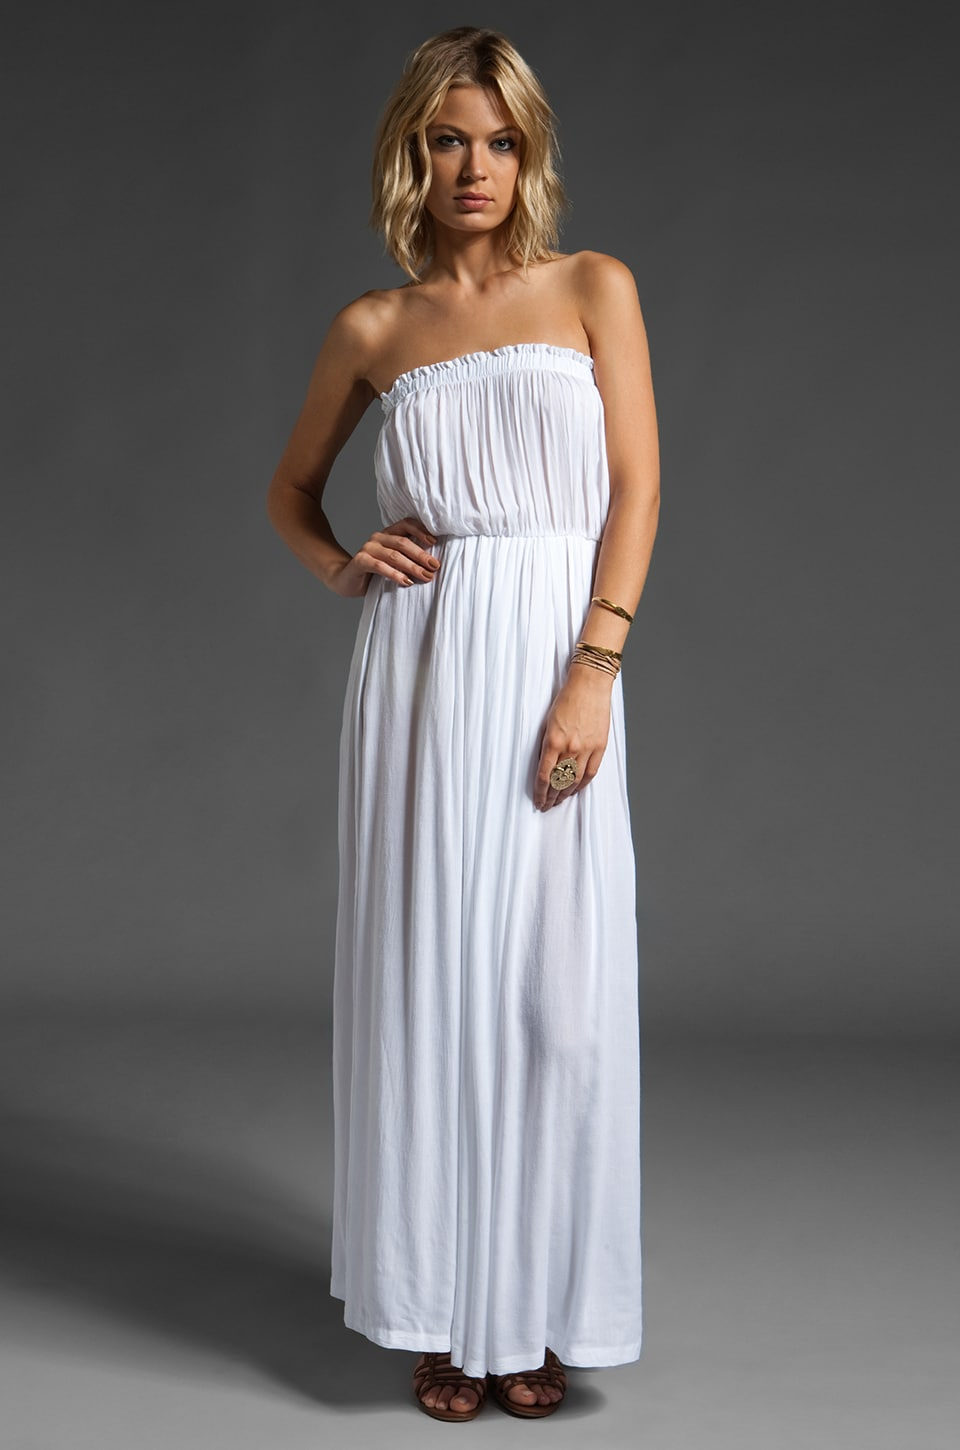 Cheap White Strapless Dresses